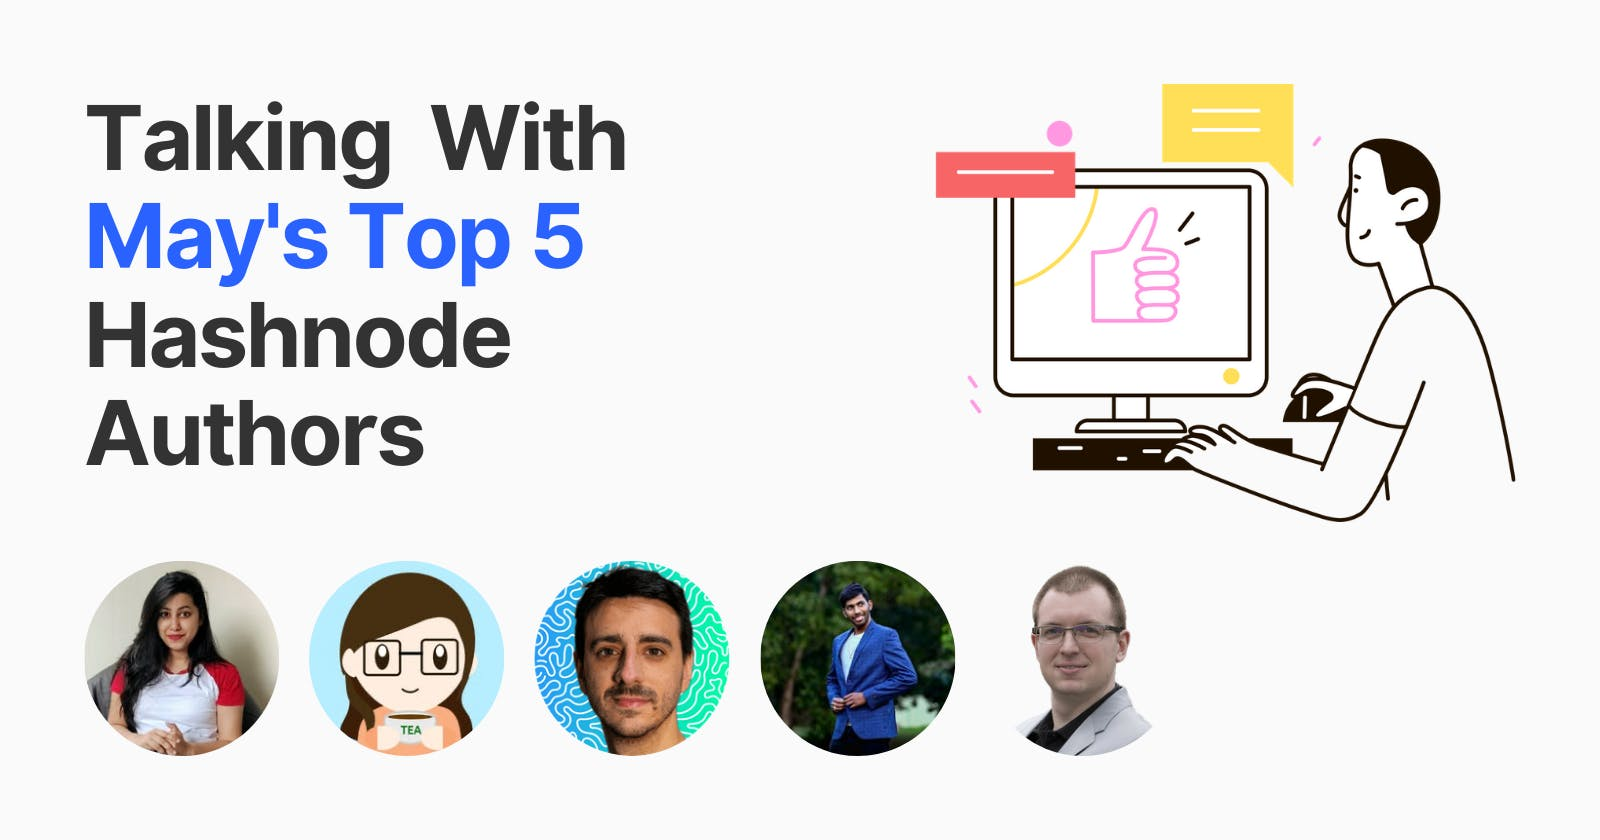 Let's Talk With May's Top 5 Hashnode Authors